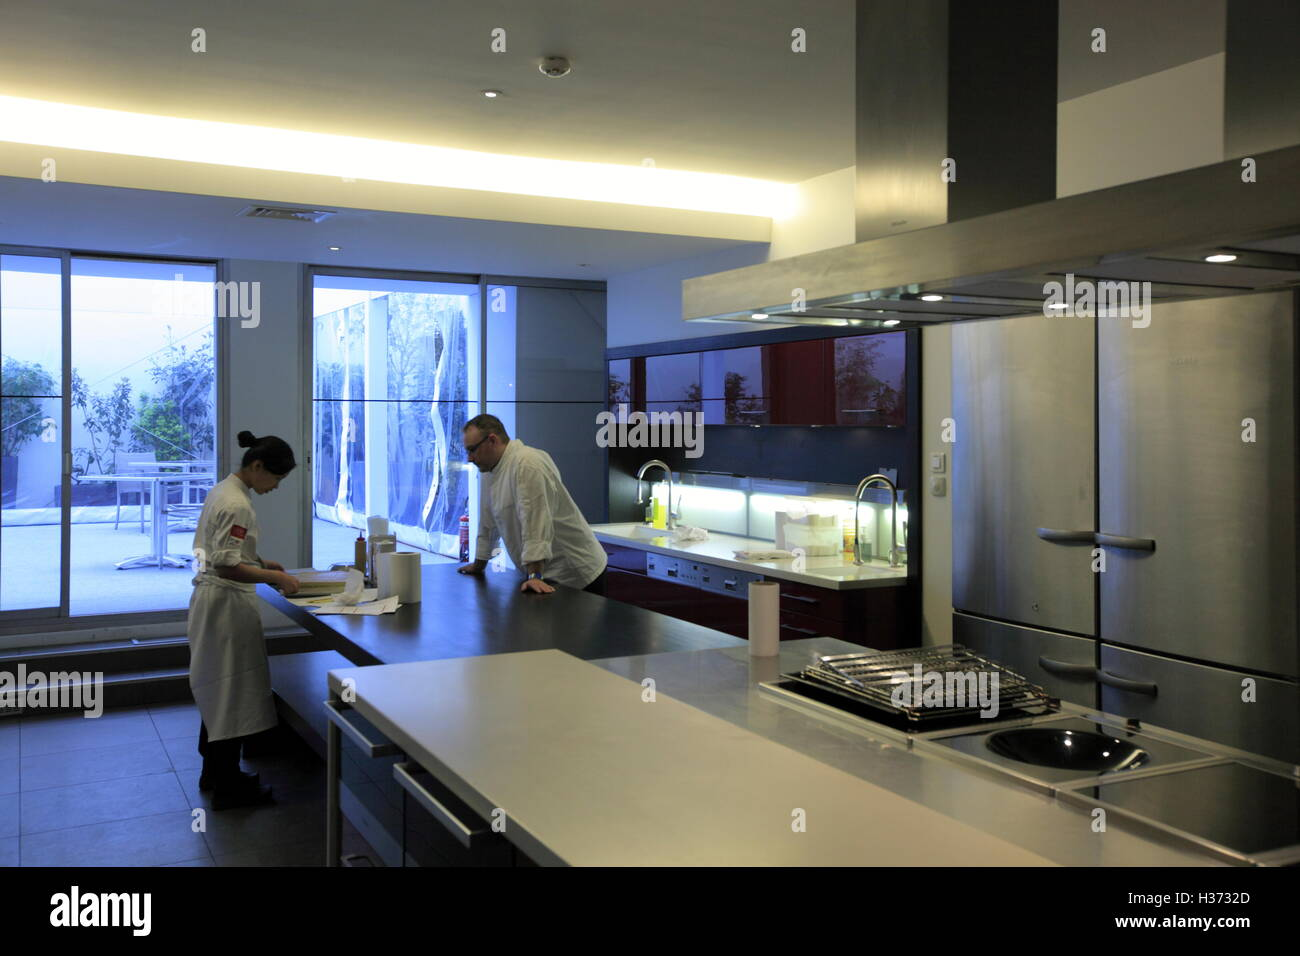 Classroom With Kitchen In Ecole De Cuisine Alain Ducasse Alain - Cours de cuisine alain ducasse